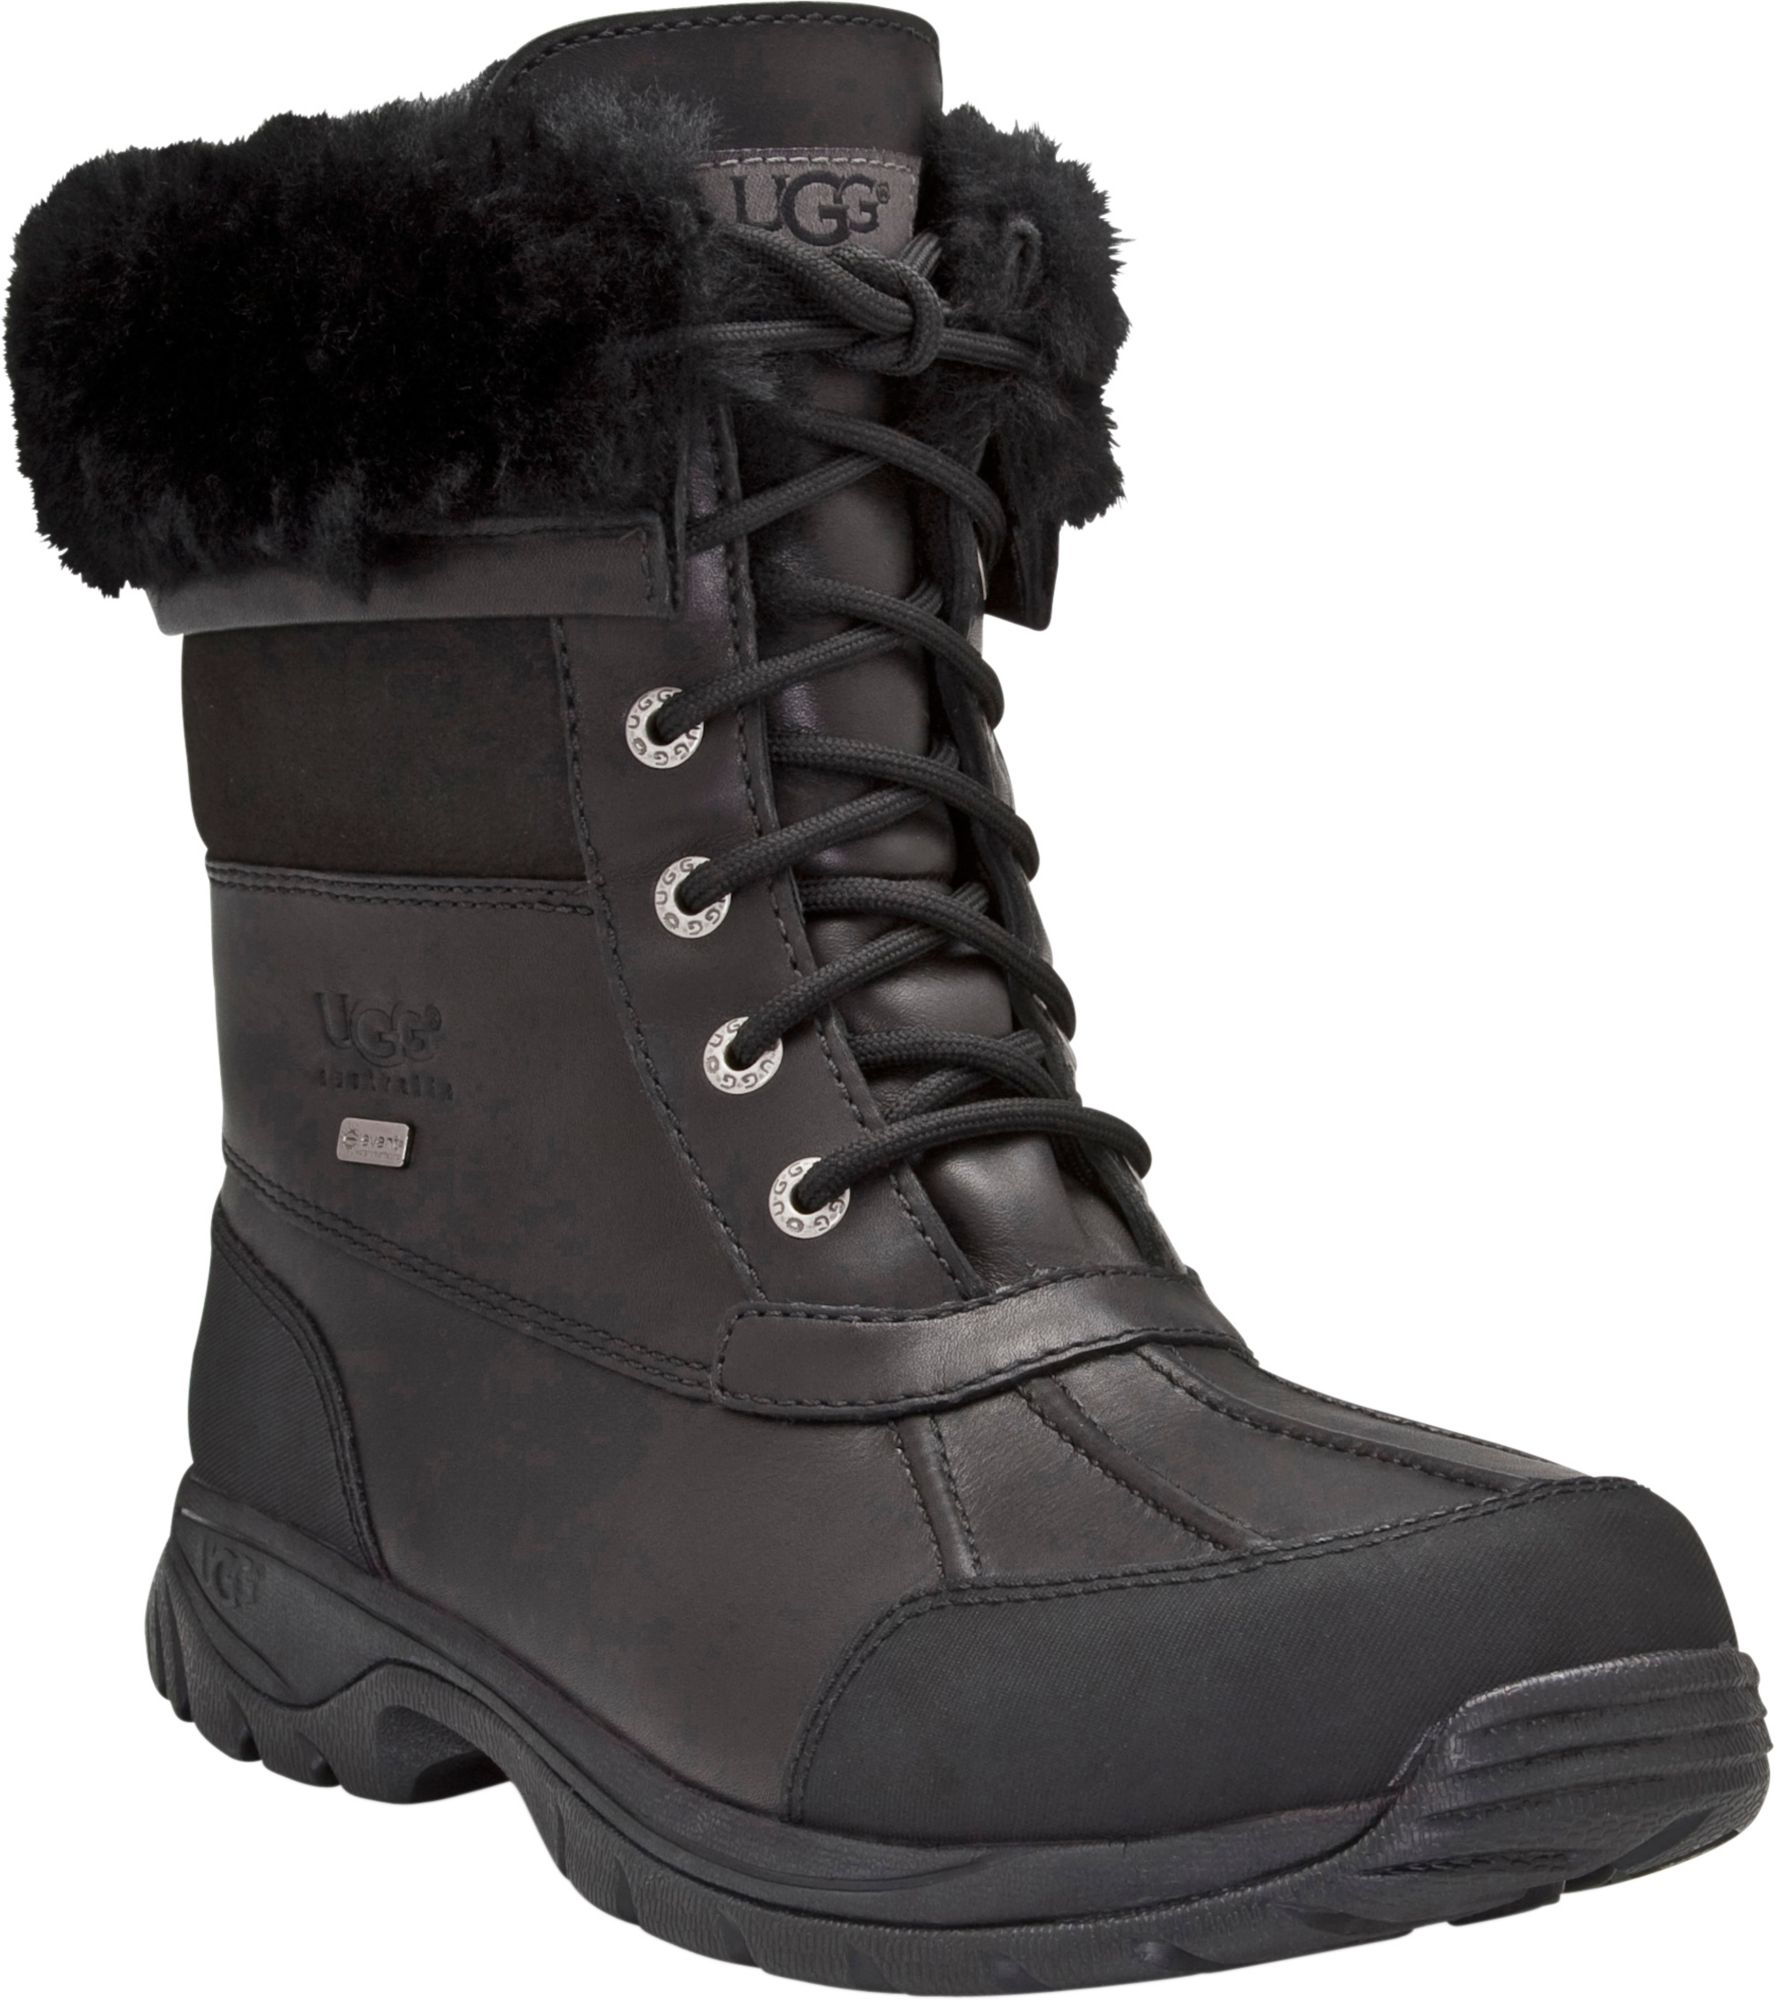 UGG Australia Men's Butte Winter Boots| DICK'S Sporting Goods